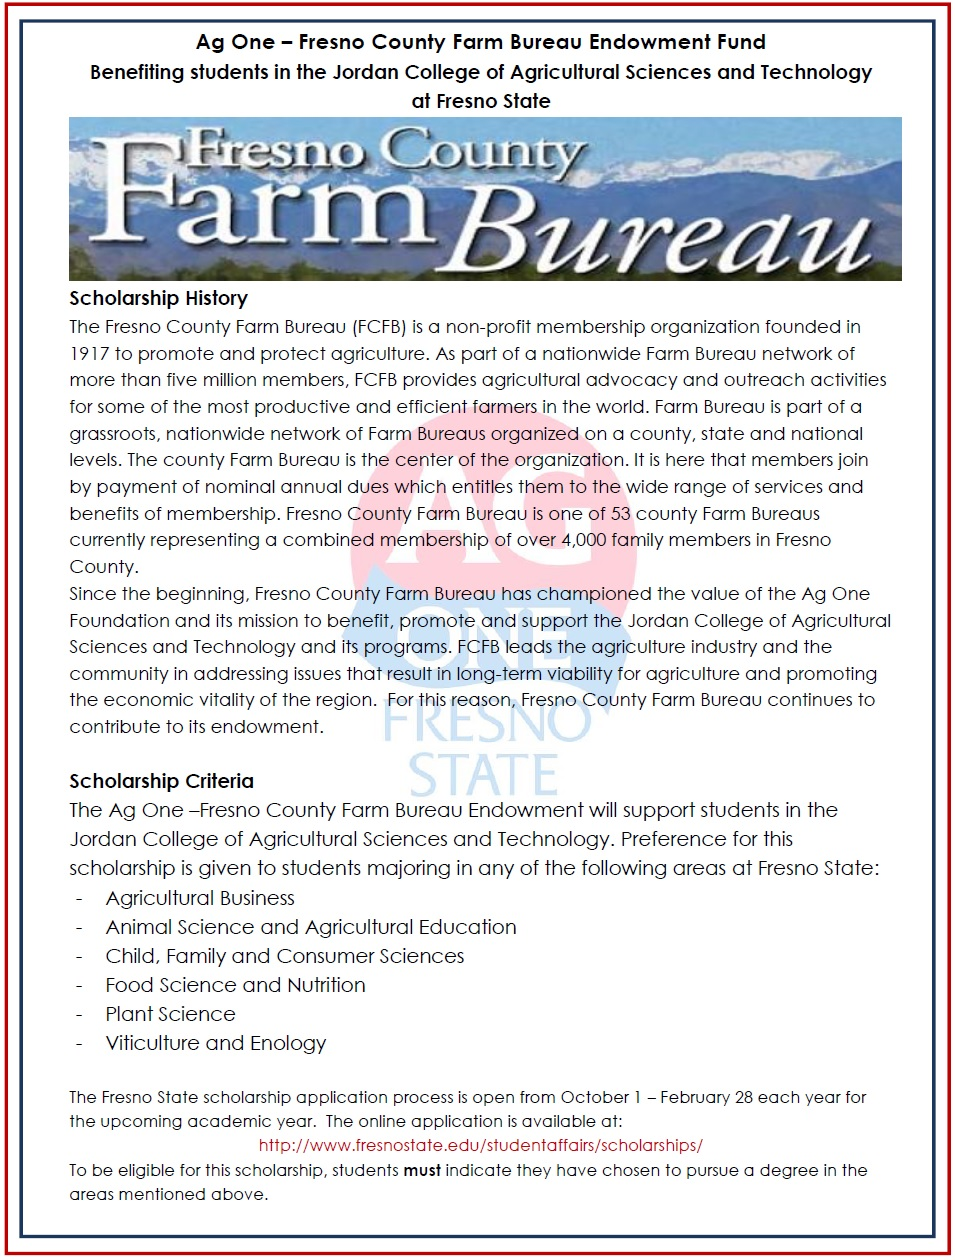 Fresno County Farm Bureau Endowment Description